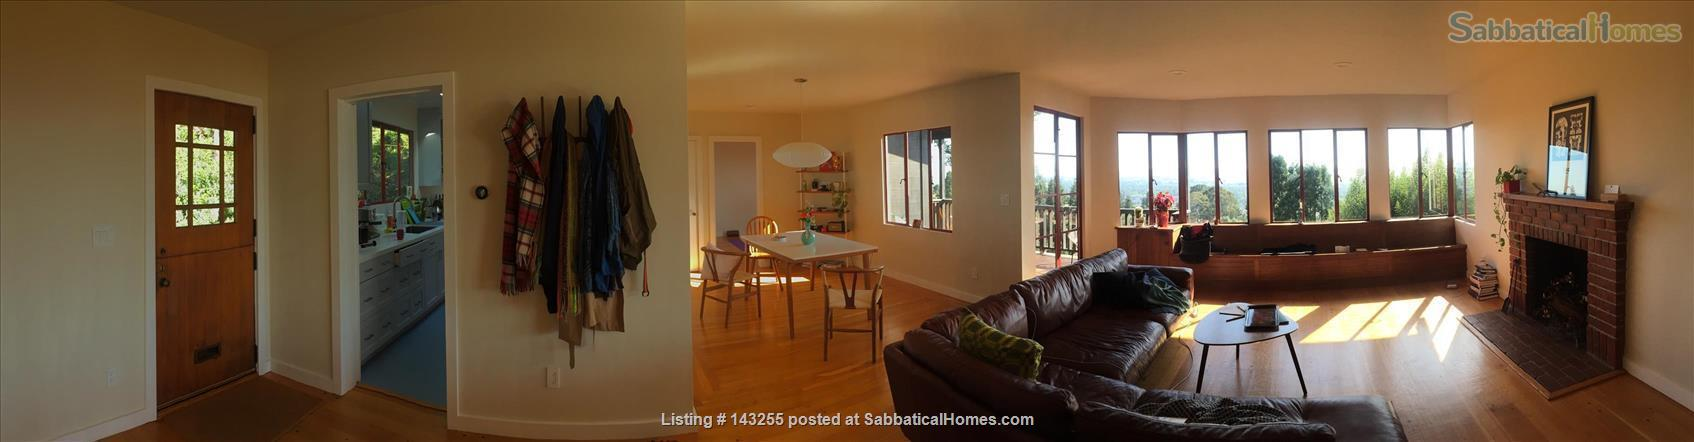 Beautiful light-filled house with Bay views near Rose Garden, walkable to UCB, North Berkeley restaurants, cafés, stores, farmers market Home Rental in Berkeley, California, United States 2